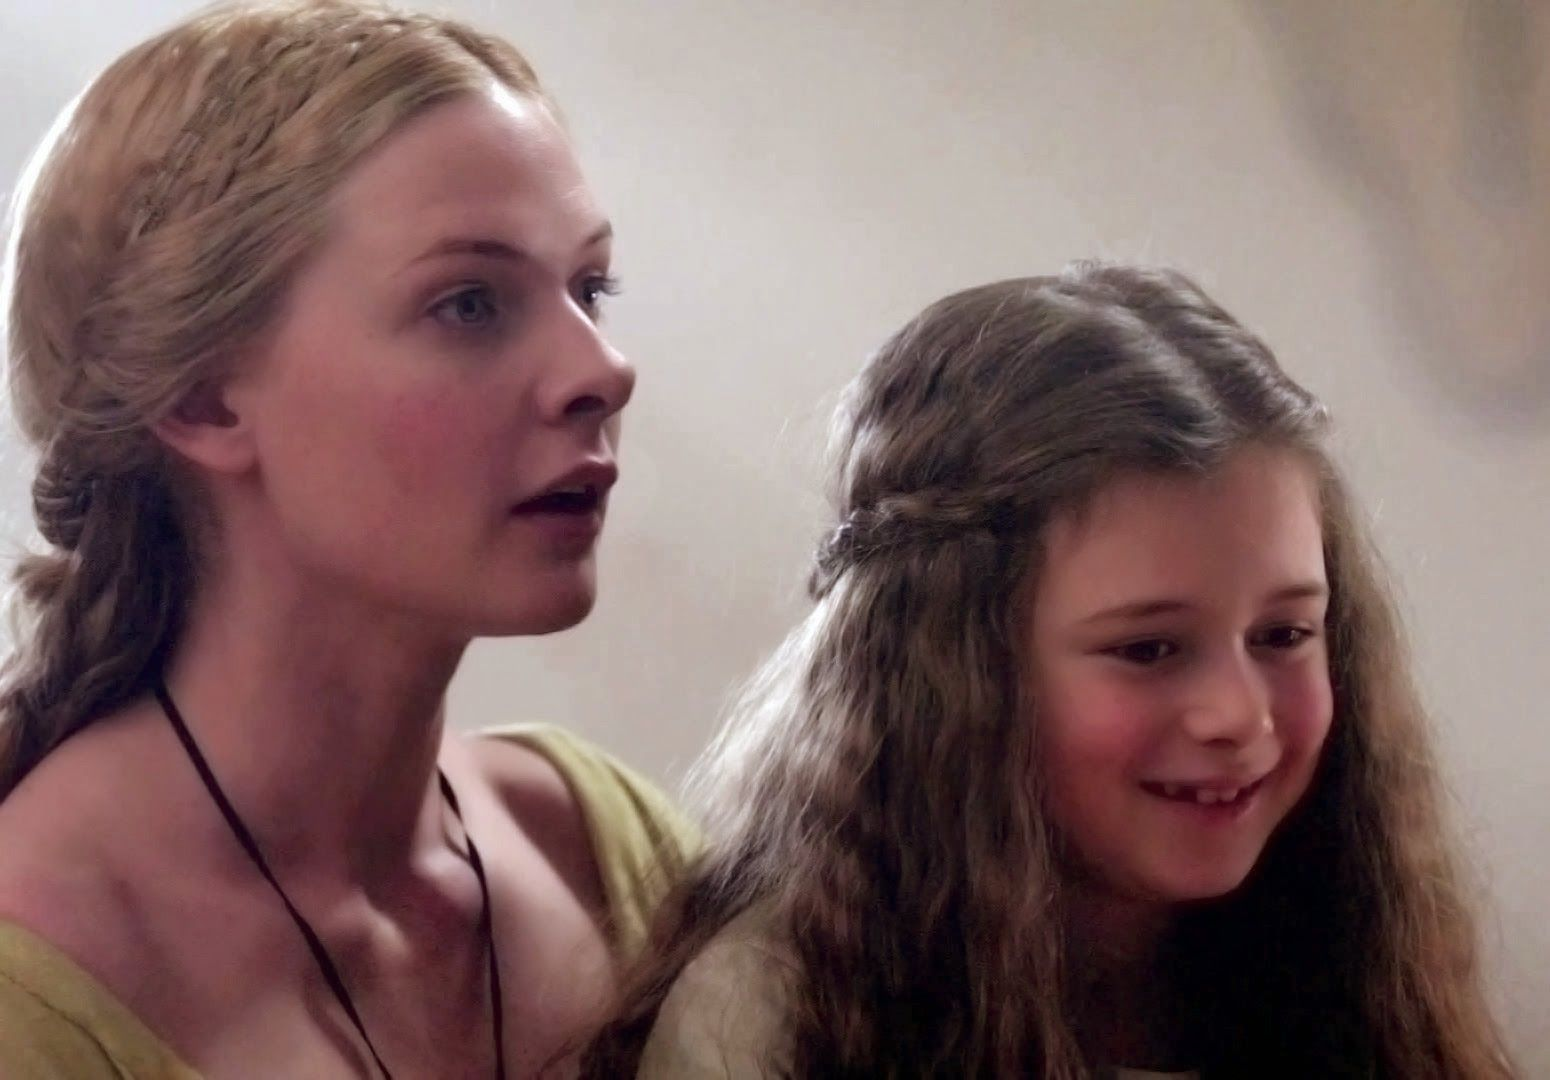 The White Queen Queen Elizabeth Woodville And Her Daughter The